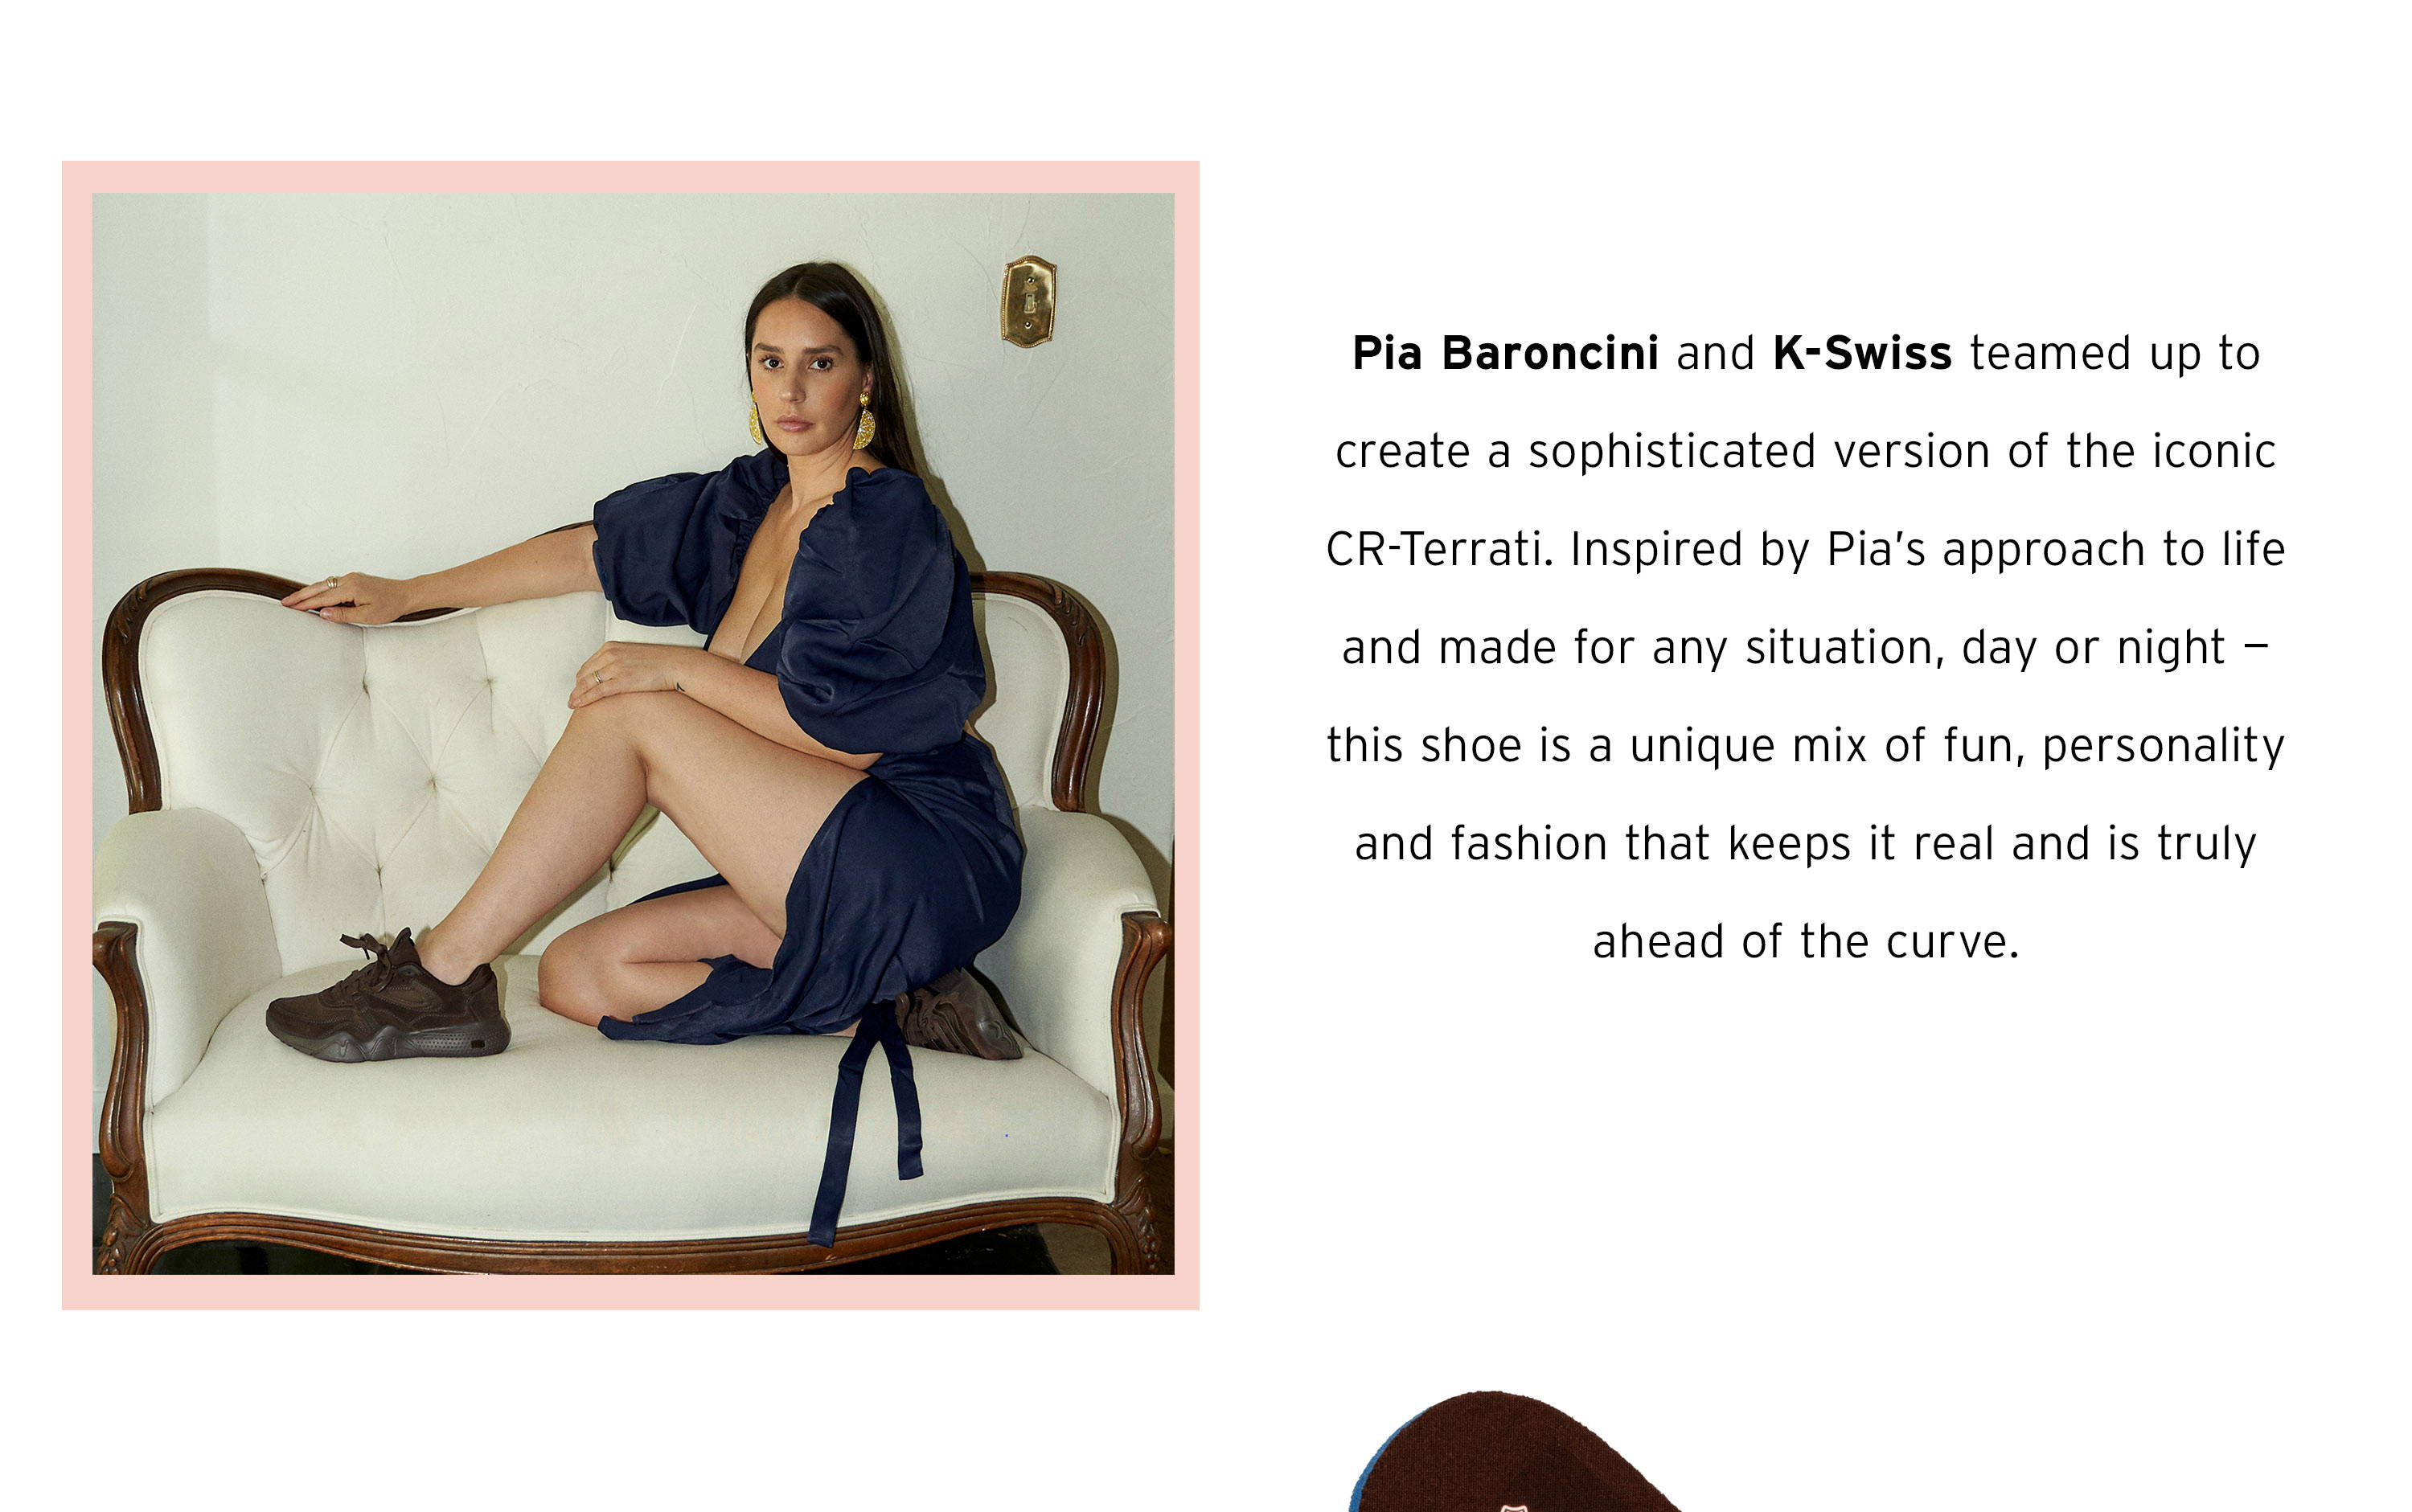 Picture of Pia Baroncini on couch: Pia Baroncini and K-Swiss teamed up to create a sophisticated version of the iconic CR-Terrati. Inspired by Pia's approach to life and made for any situation, day or night - this shoe is a unique mix of fun, personality and fashion that keeps it real and is truly ahead of the curve.